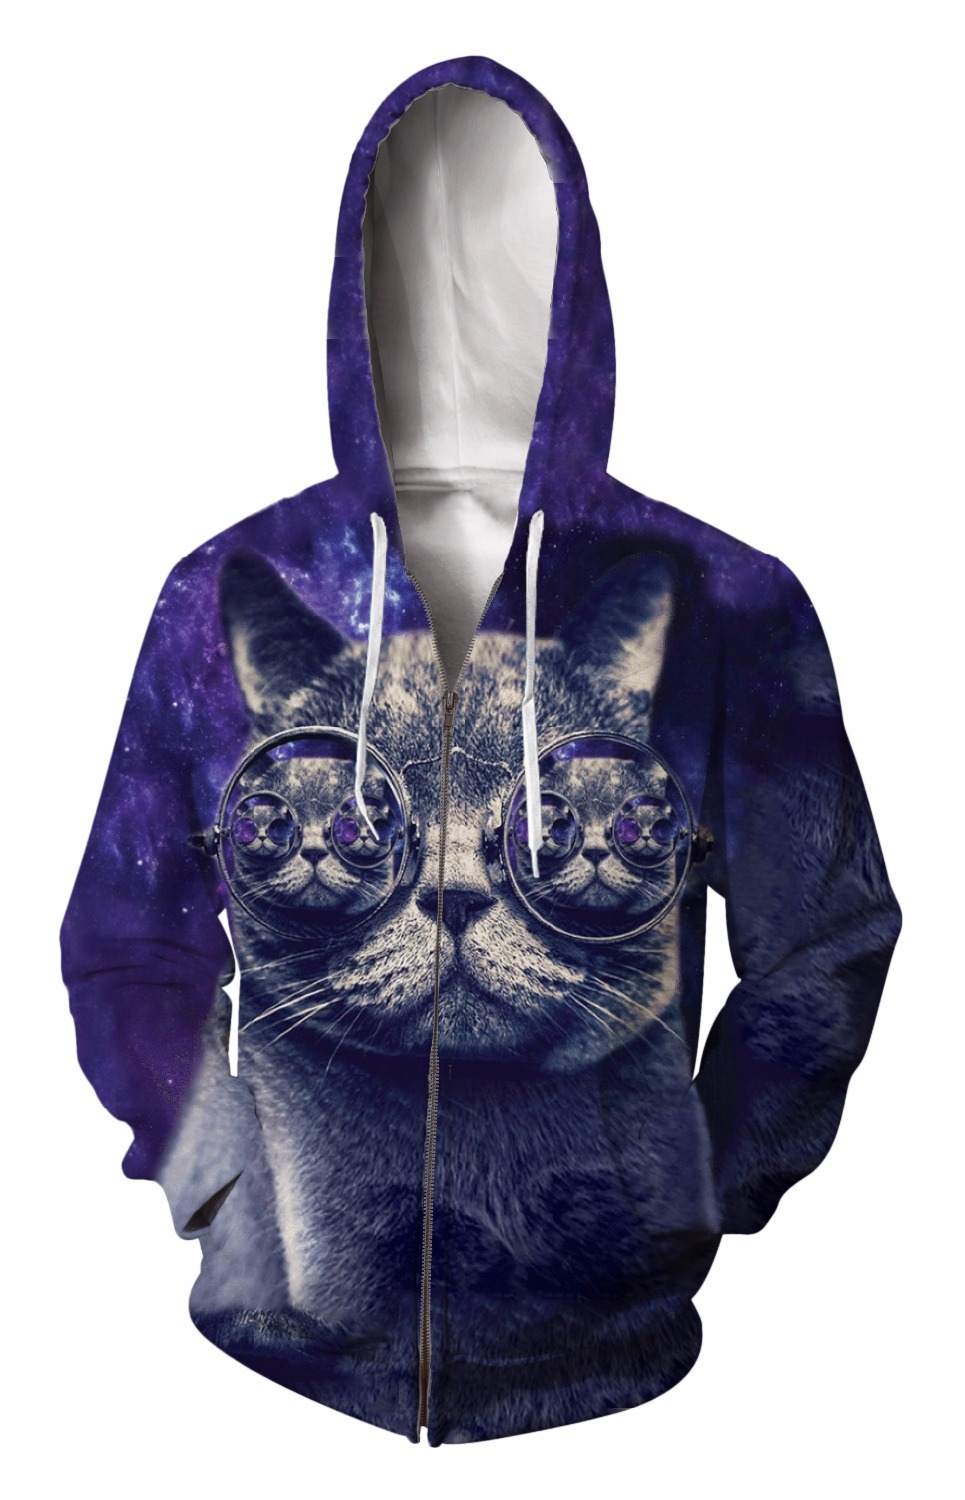 Zip-Up Hoodie 3d Print Soft cool eyes Cat Clothing Women Men Tops Hooded Casual Zipper Sweatshirts Outfits Coats Sweat factory